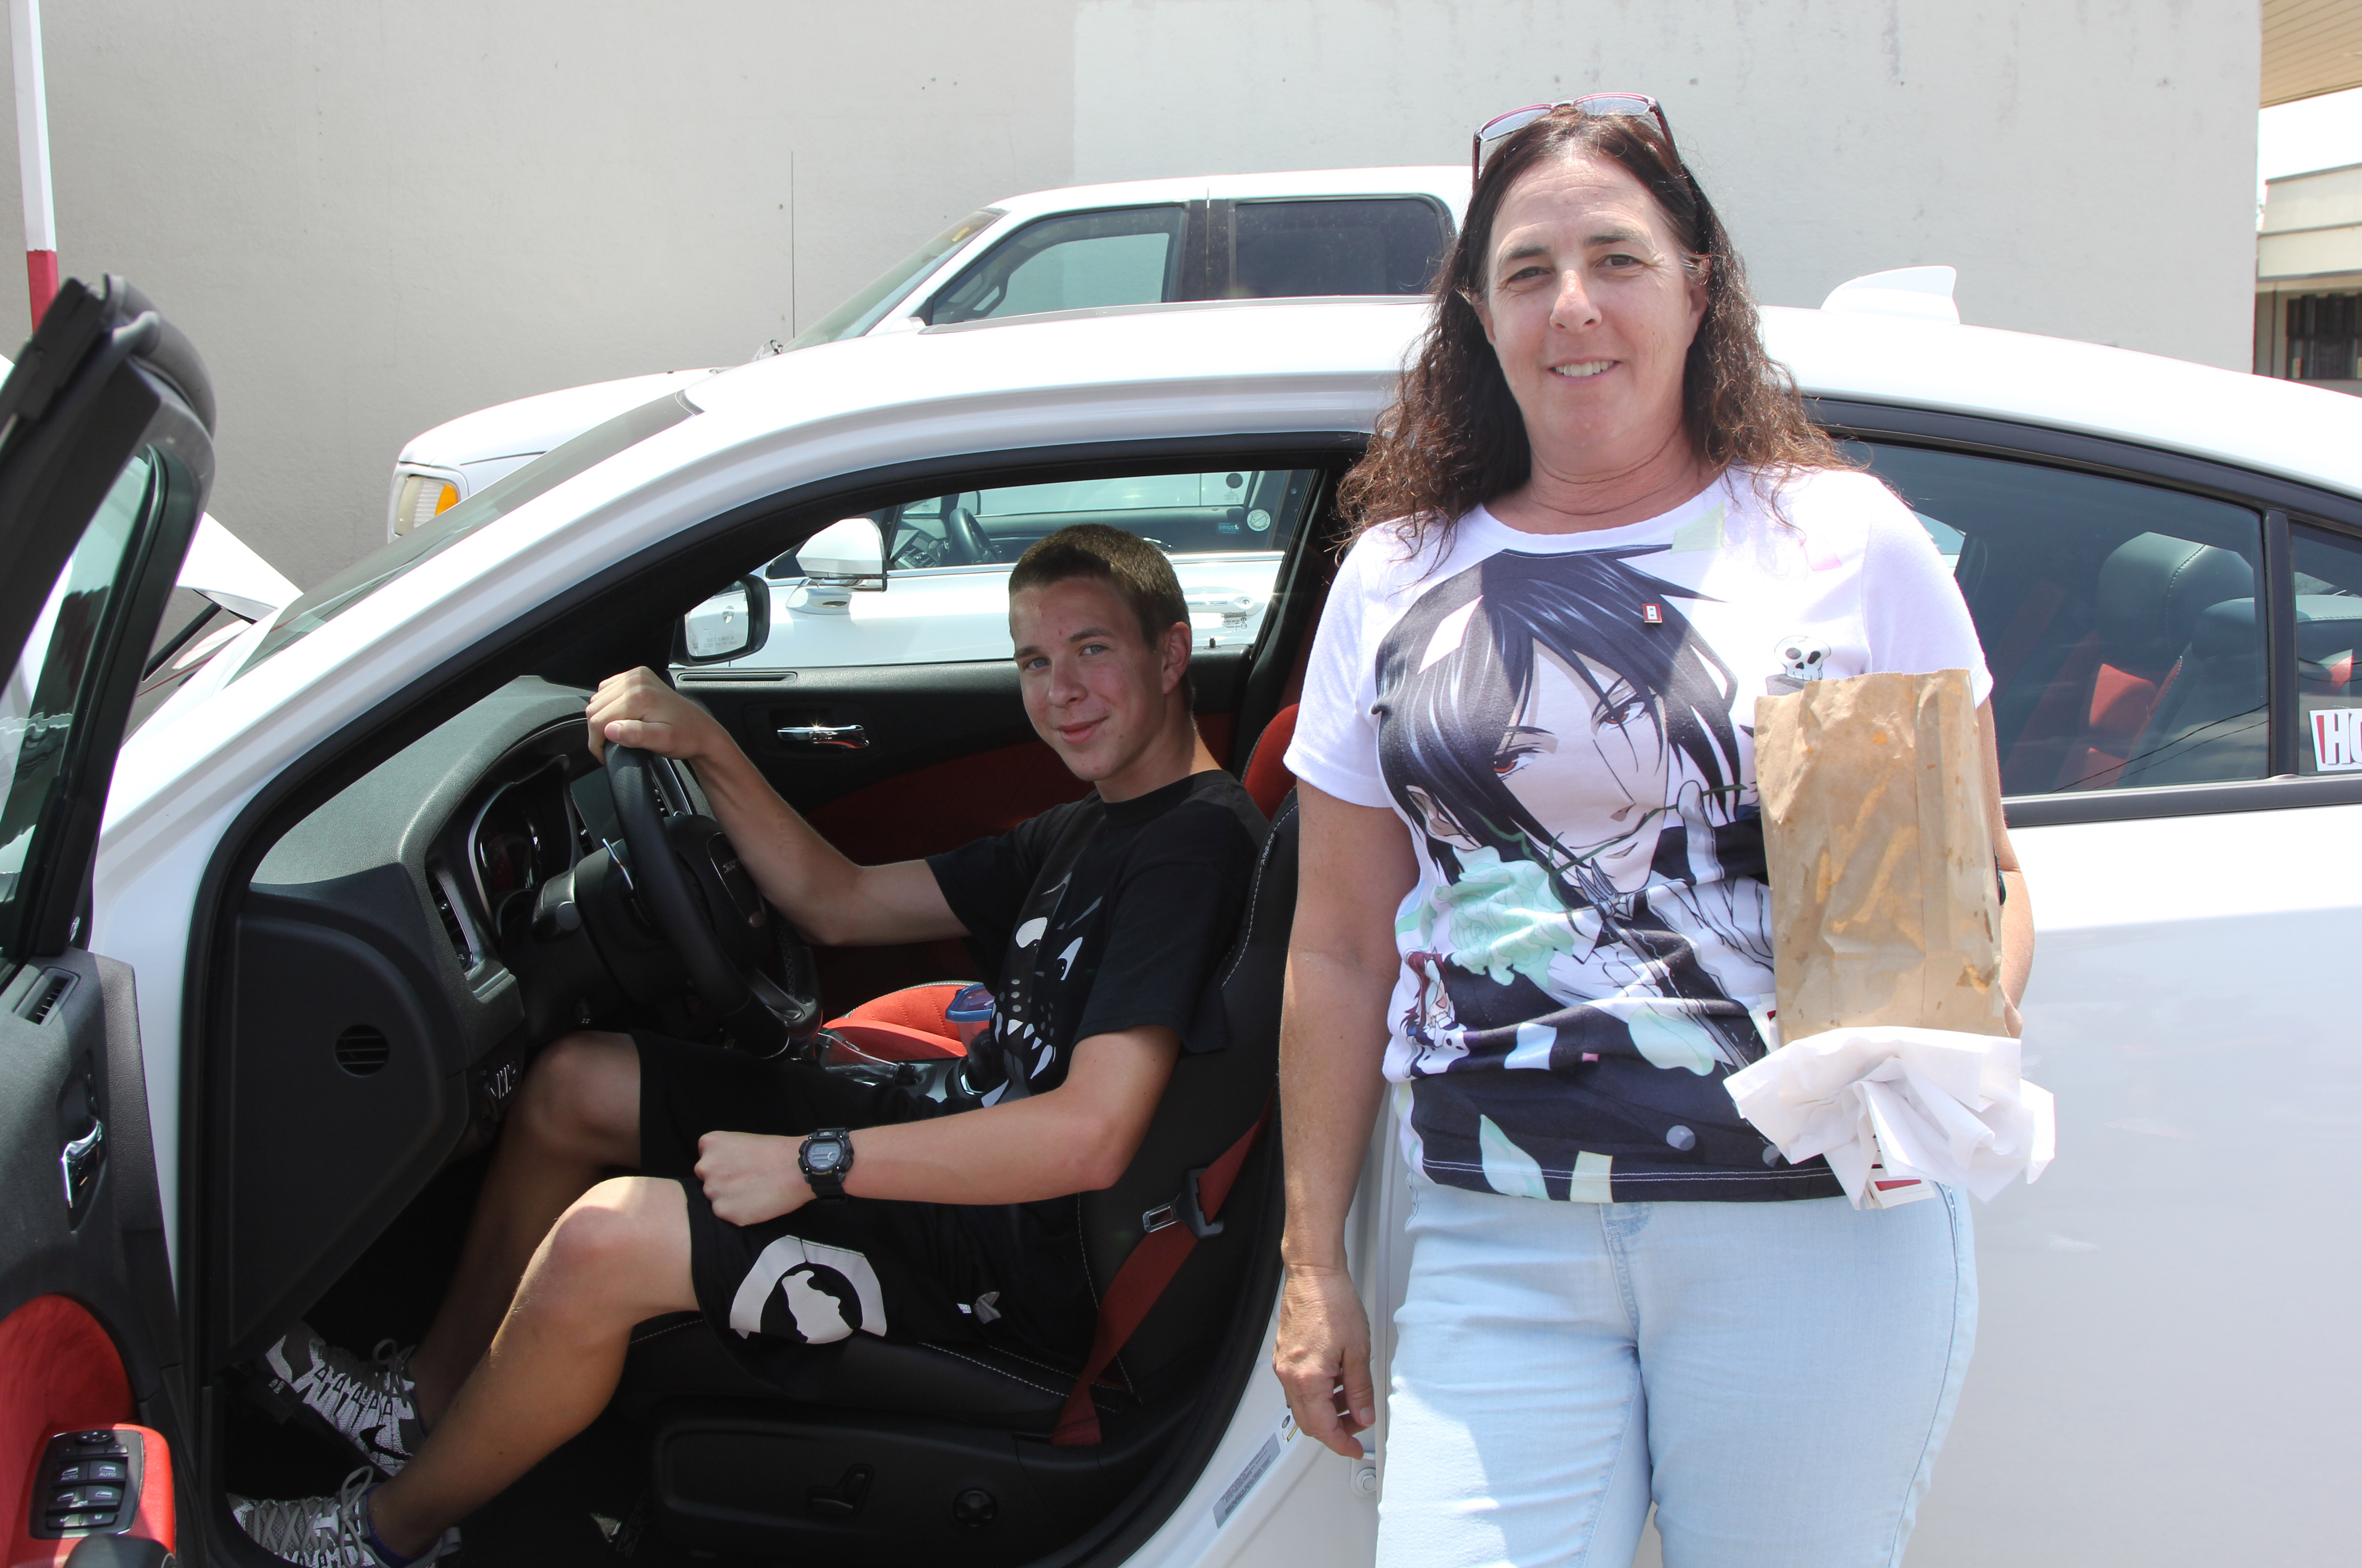 At Wimpy Burger in Tulare, California, we met our first Hellcat fans. Cathy and Matthew traded us some Wimpy's seasoned fries for a chance to sit in the Charger and rev it up. We got the best part of that deal, Wimpy's fries are fantastic!